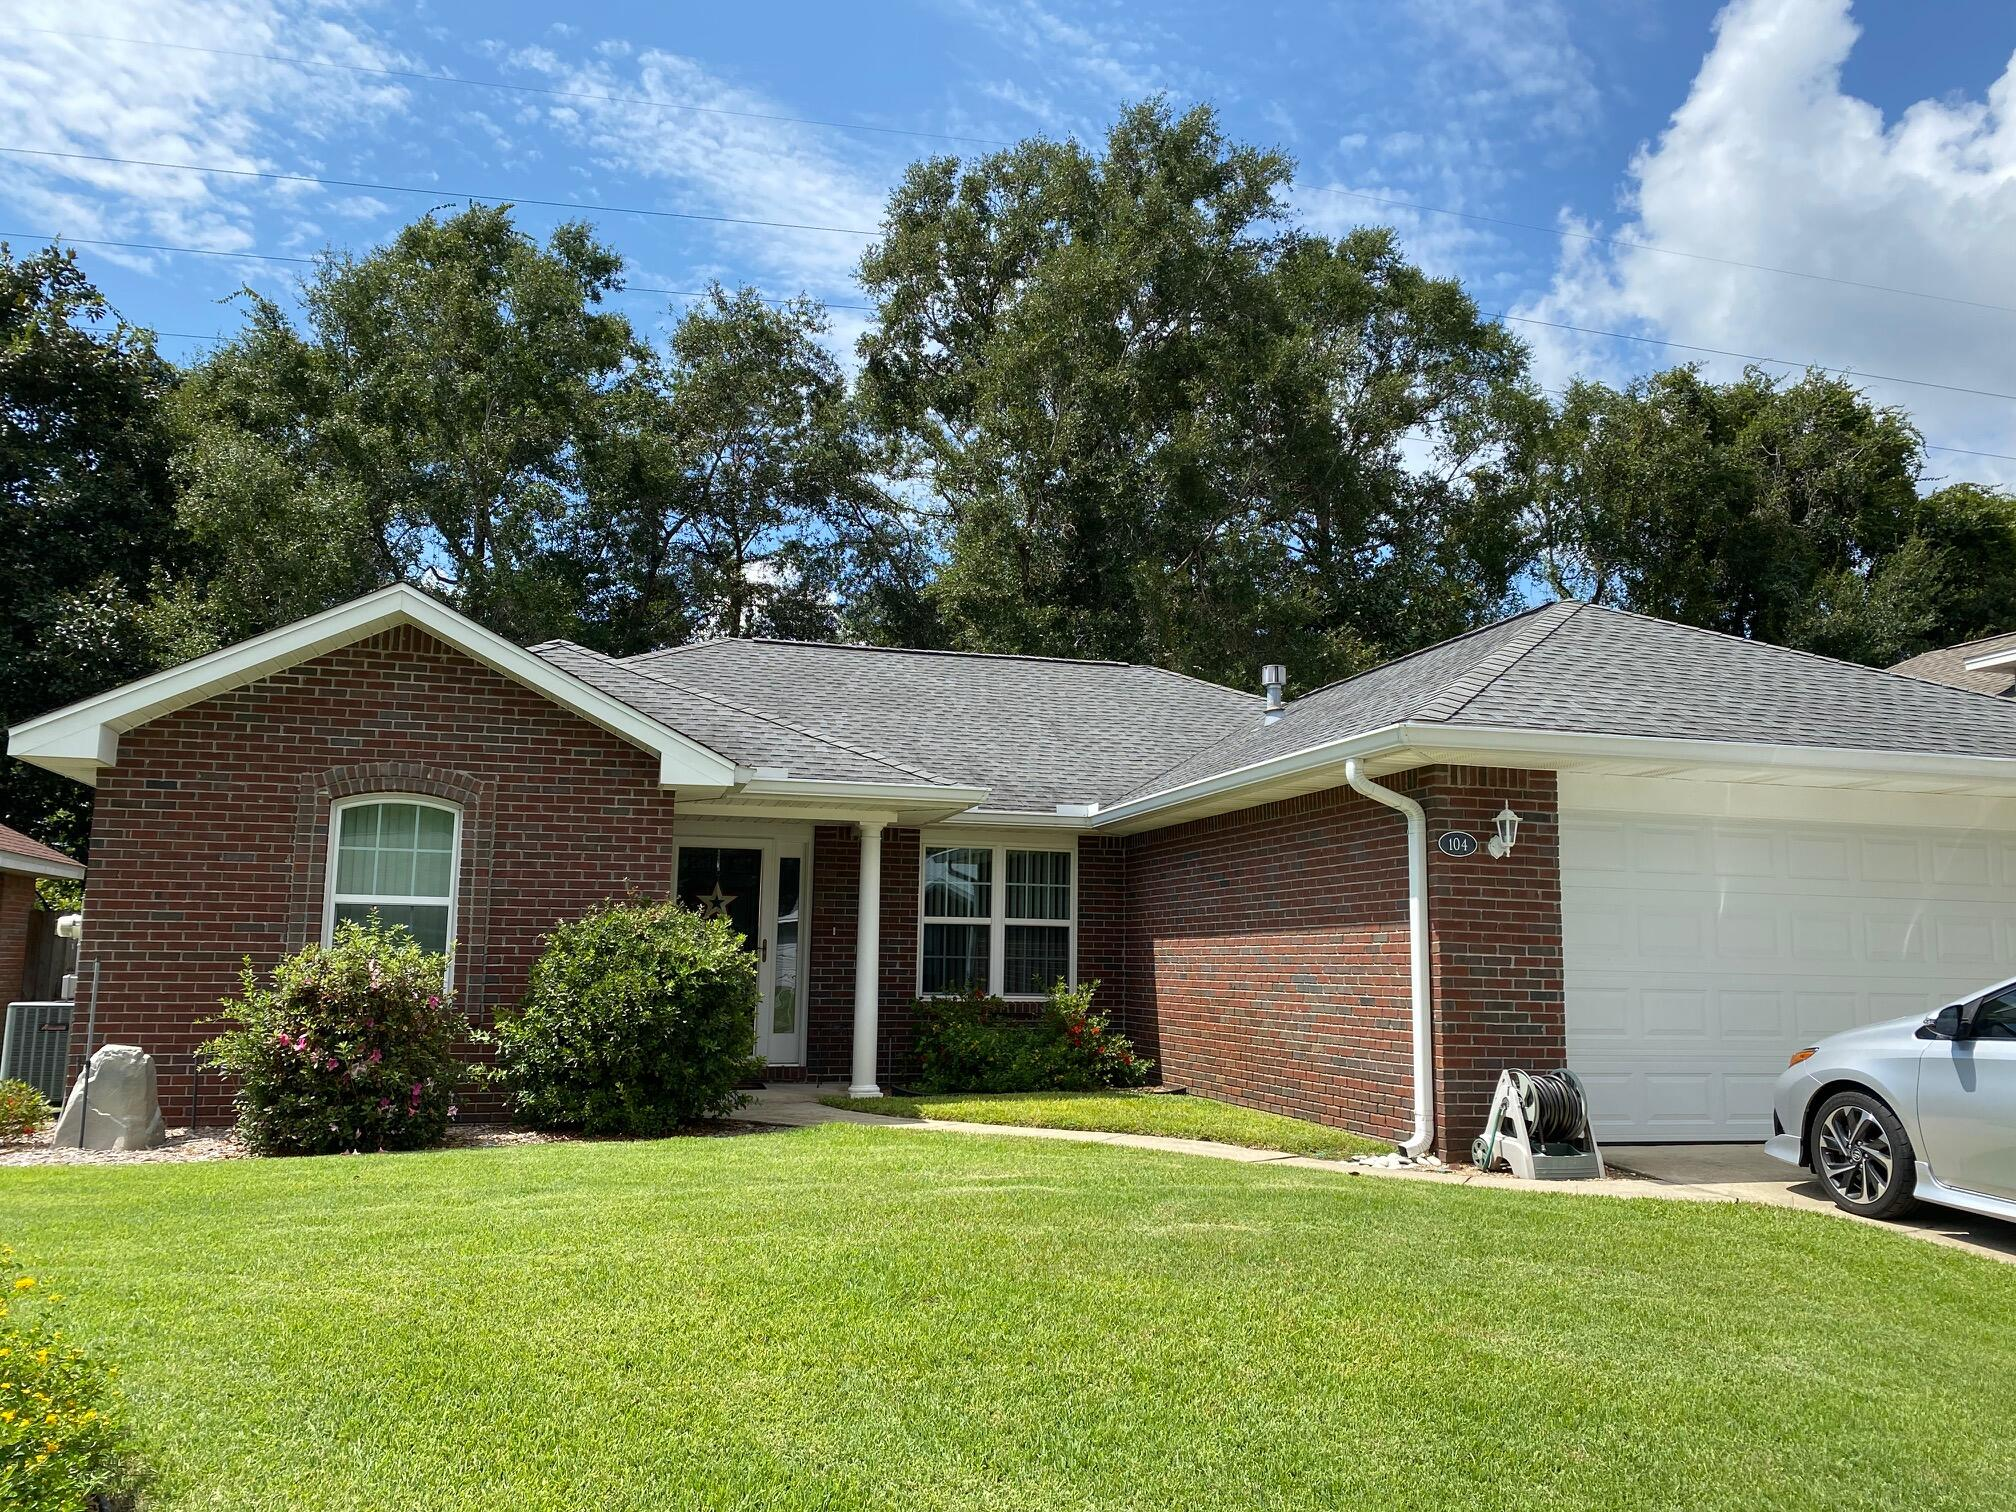 Incredible one owner Barton home. This all brick home is located in the heart of Niceville. Seller has updated this home with the following: Roof 2013, new fence 2014, HVAC 2010, HWH 2020, New folkers windows 2014, new garage door 2014, and new LVP flooring 2019.  Kitchen has been updated with corian countertops, and refaced cabinets. As well as the appliances were updated in 2010.  Randy Wise remodeled the Florida room with all new brick, windows and A/C. Out back you will see the incredible Oaks that adorn the backyard.  Sprinklers keep the yard green and extract storage shed in the back for all your storage needs.  Close to the schools, shopping, library,  childrens park, soccer fields and more. THis is a must see home!